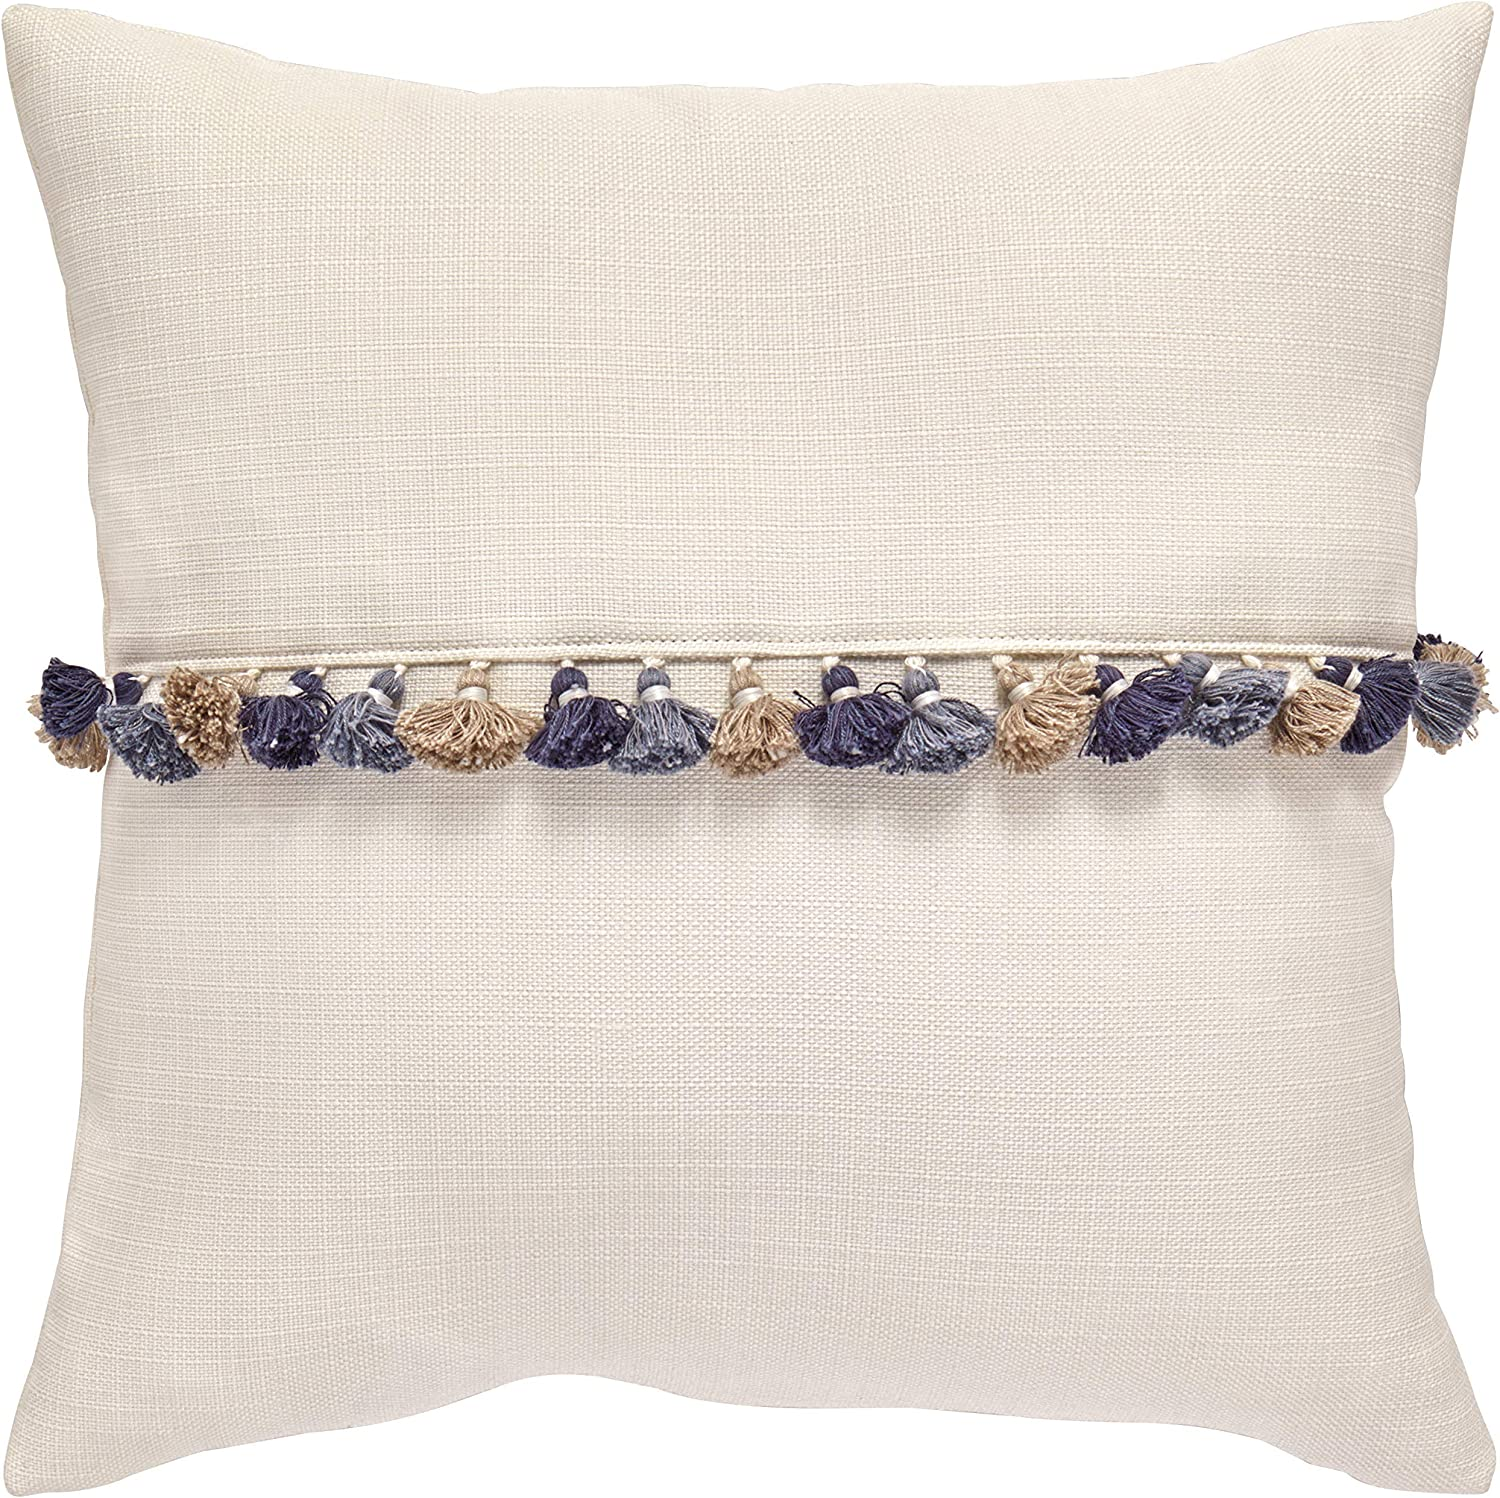 Amazon Brand – Rivet Contemporary Max 78% OFF Challenge the lowest price - Throw 17 Pillow Tassel